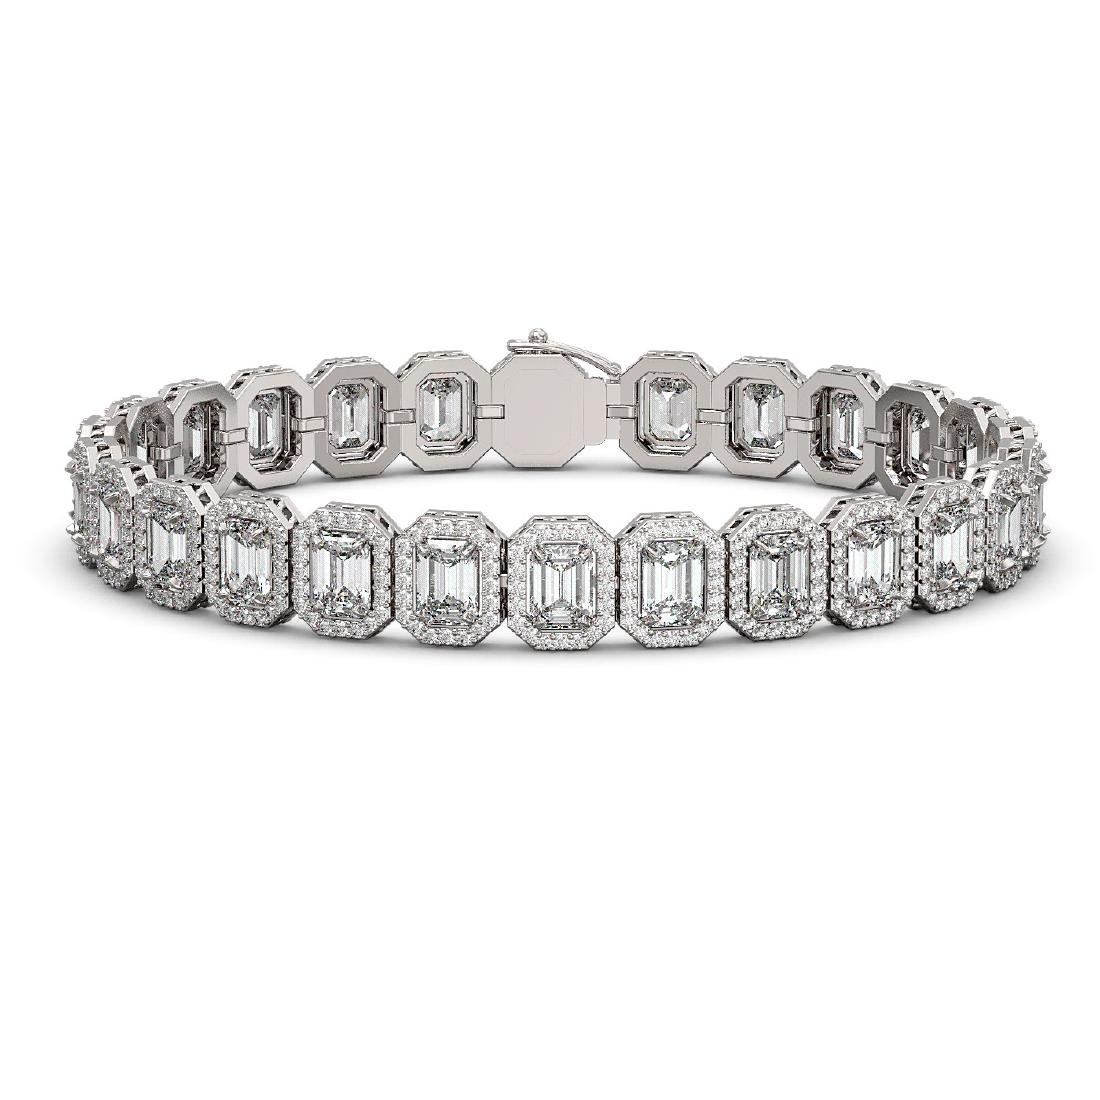 20.25 CTW Emerald Cut Diamond Designer Bracelet 18K